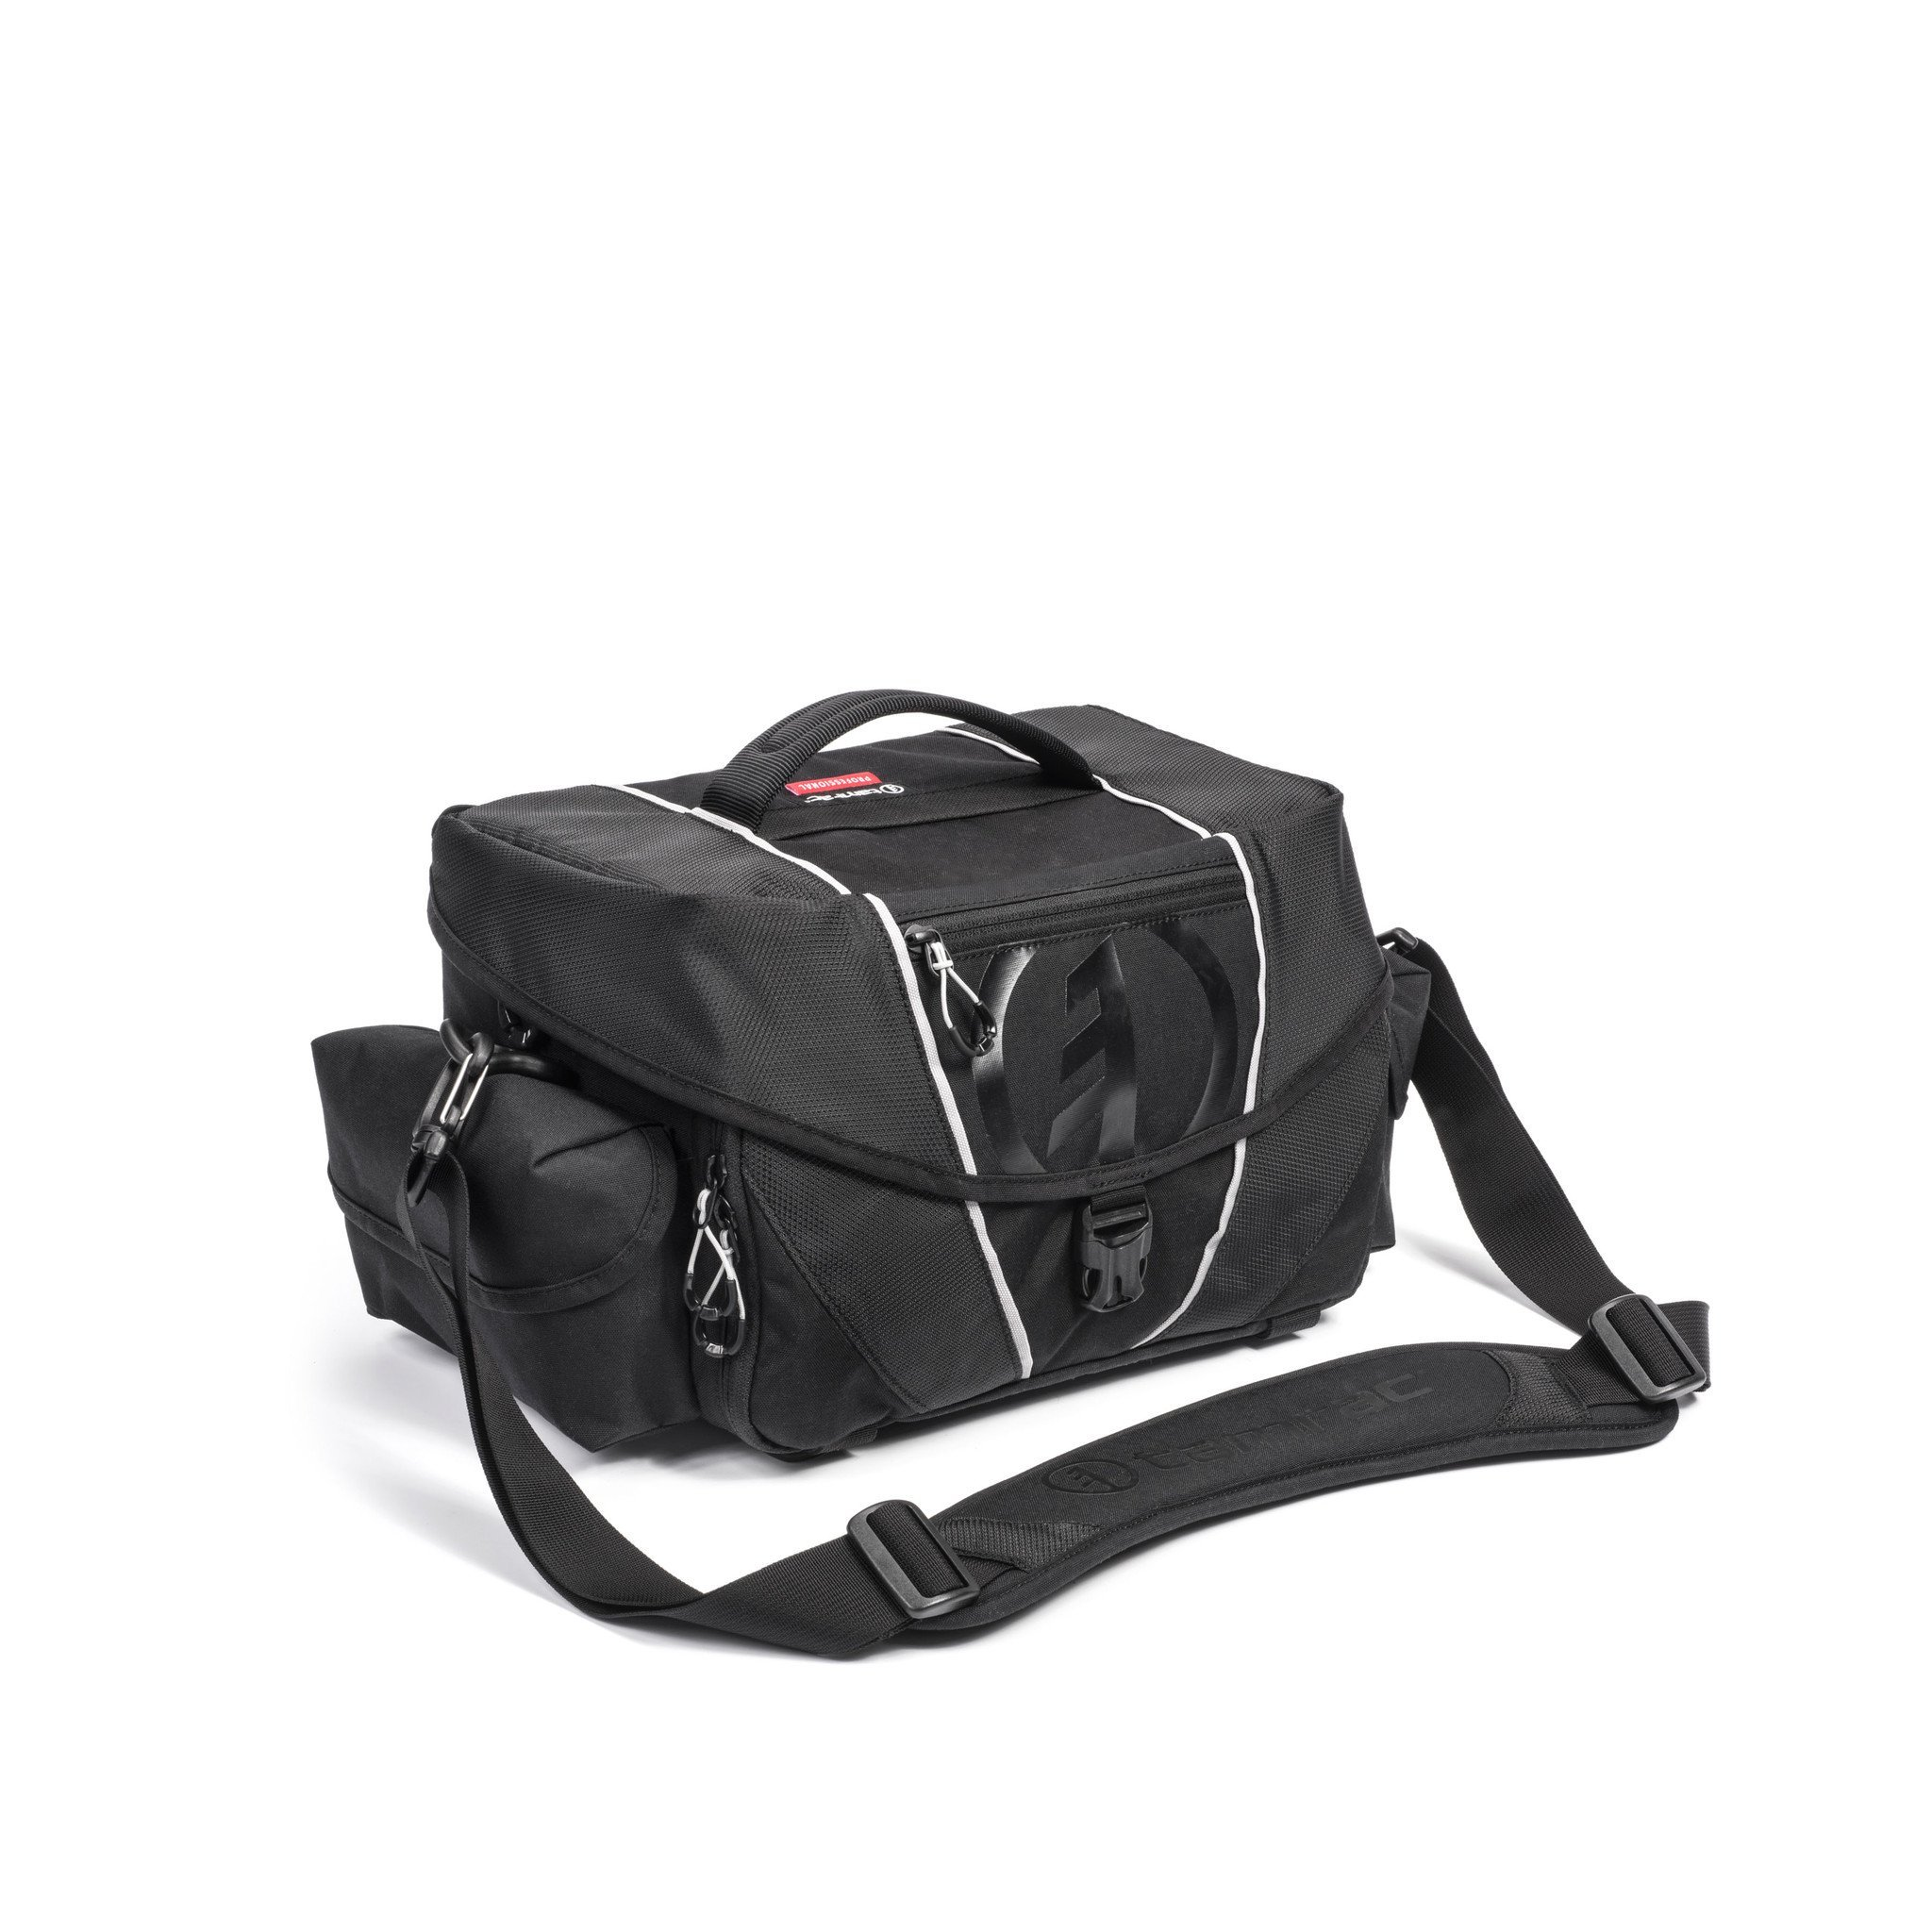 Tamrac Stratus 8 Shoulder Bag